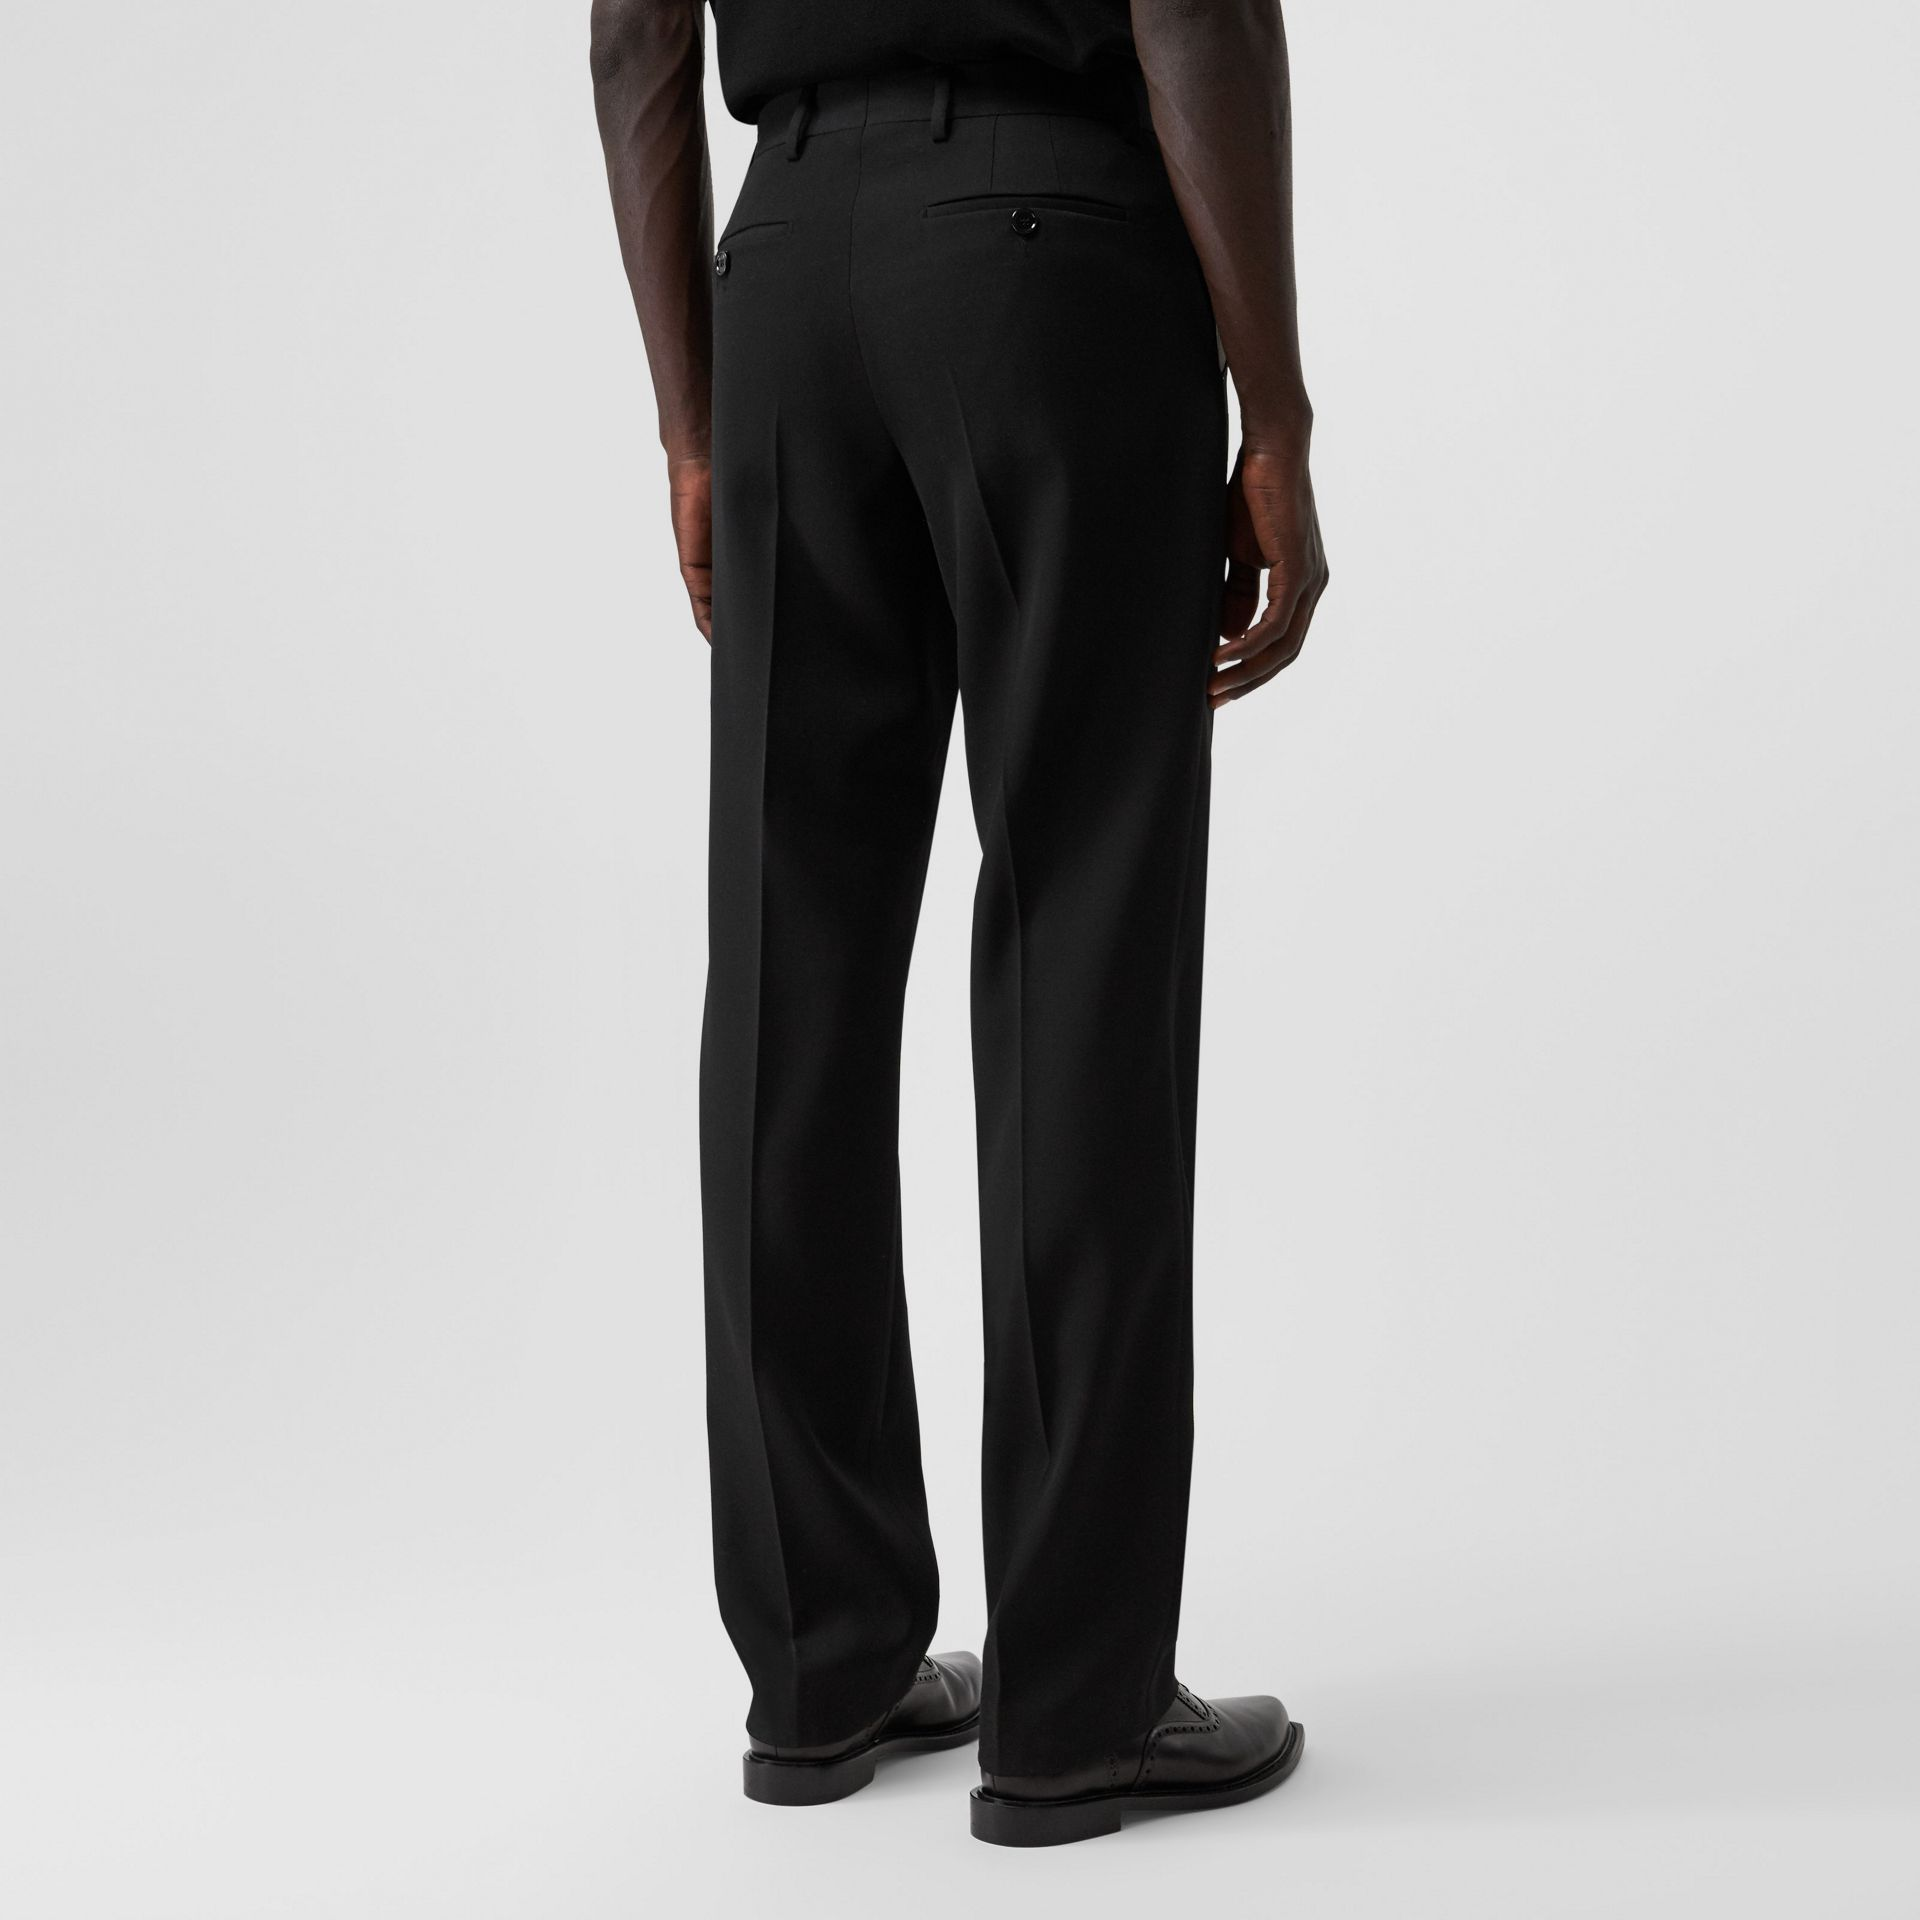 English Fit Pocket Detail Wool Tailored Trousers in Black | Burberry United Kingdom - gallery image 2